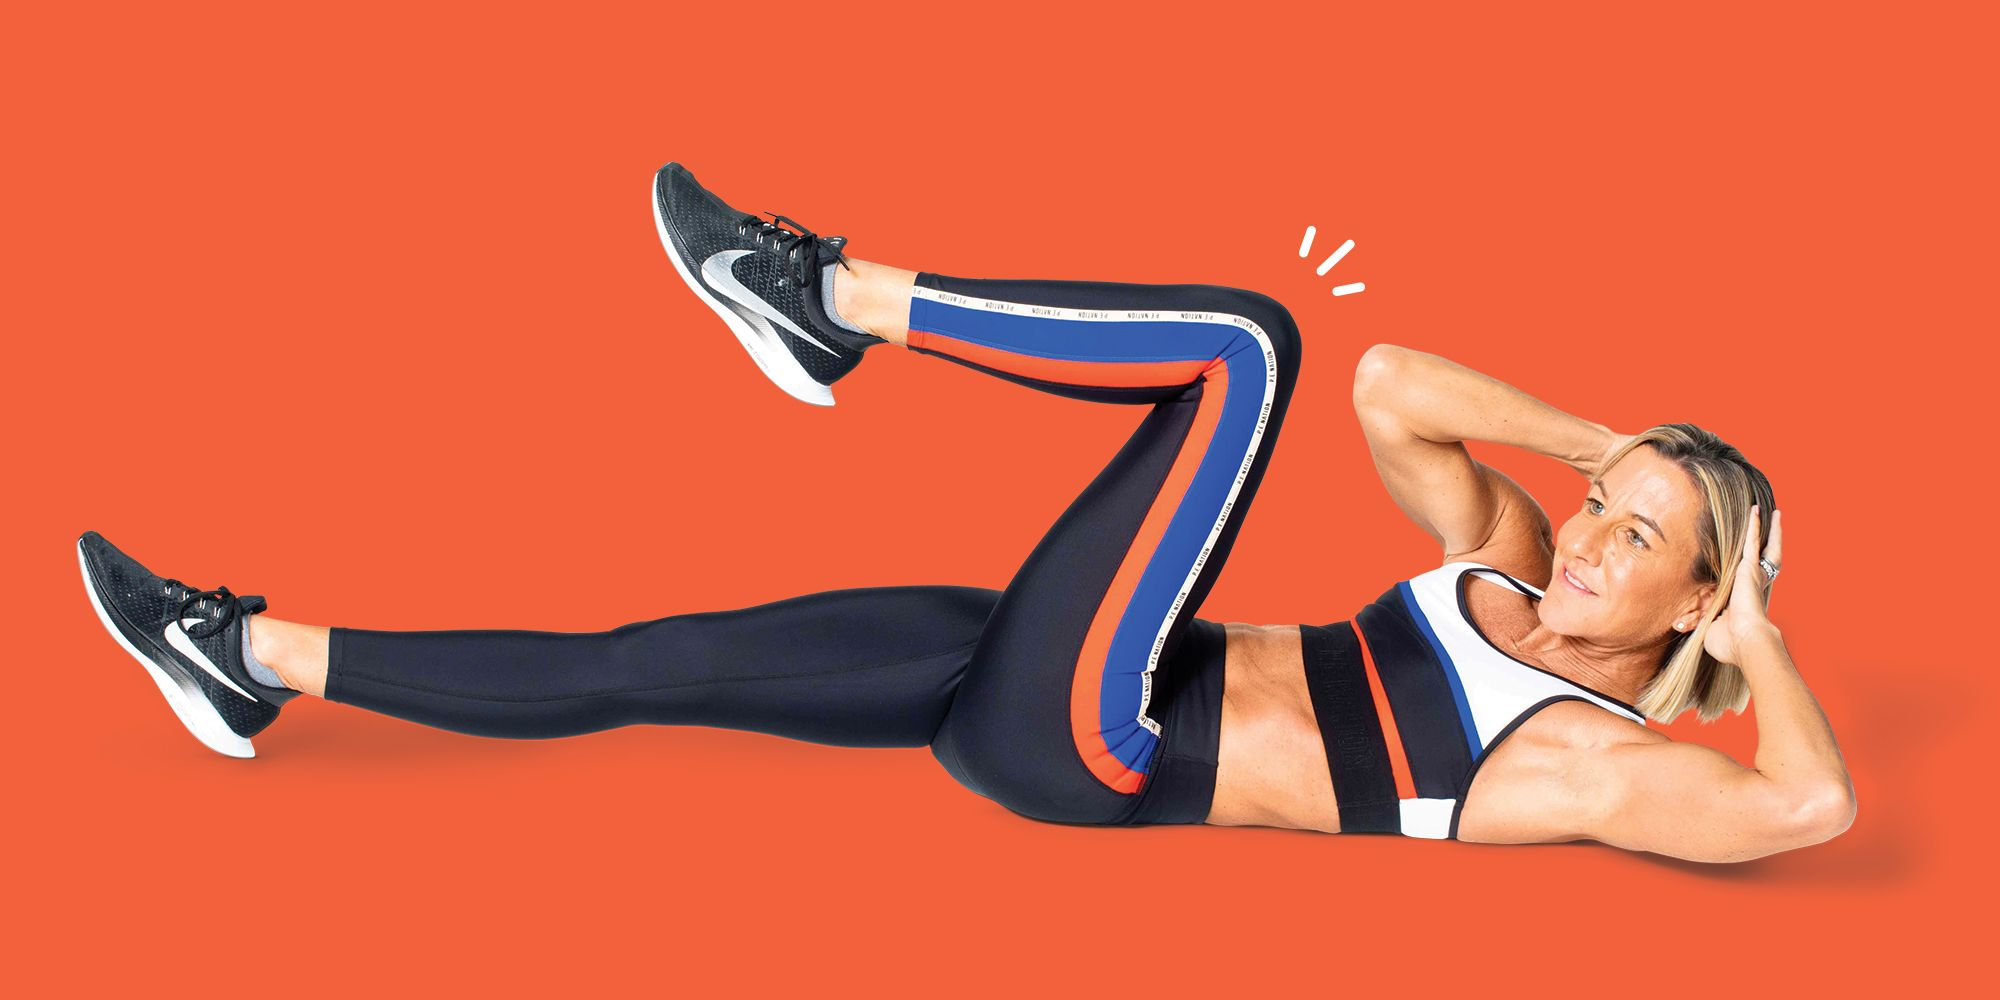 When You Have Only One Minute To Work Out, Make This Move Your Go-To